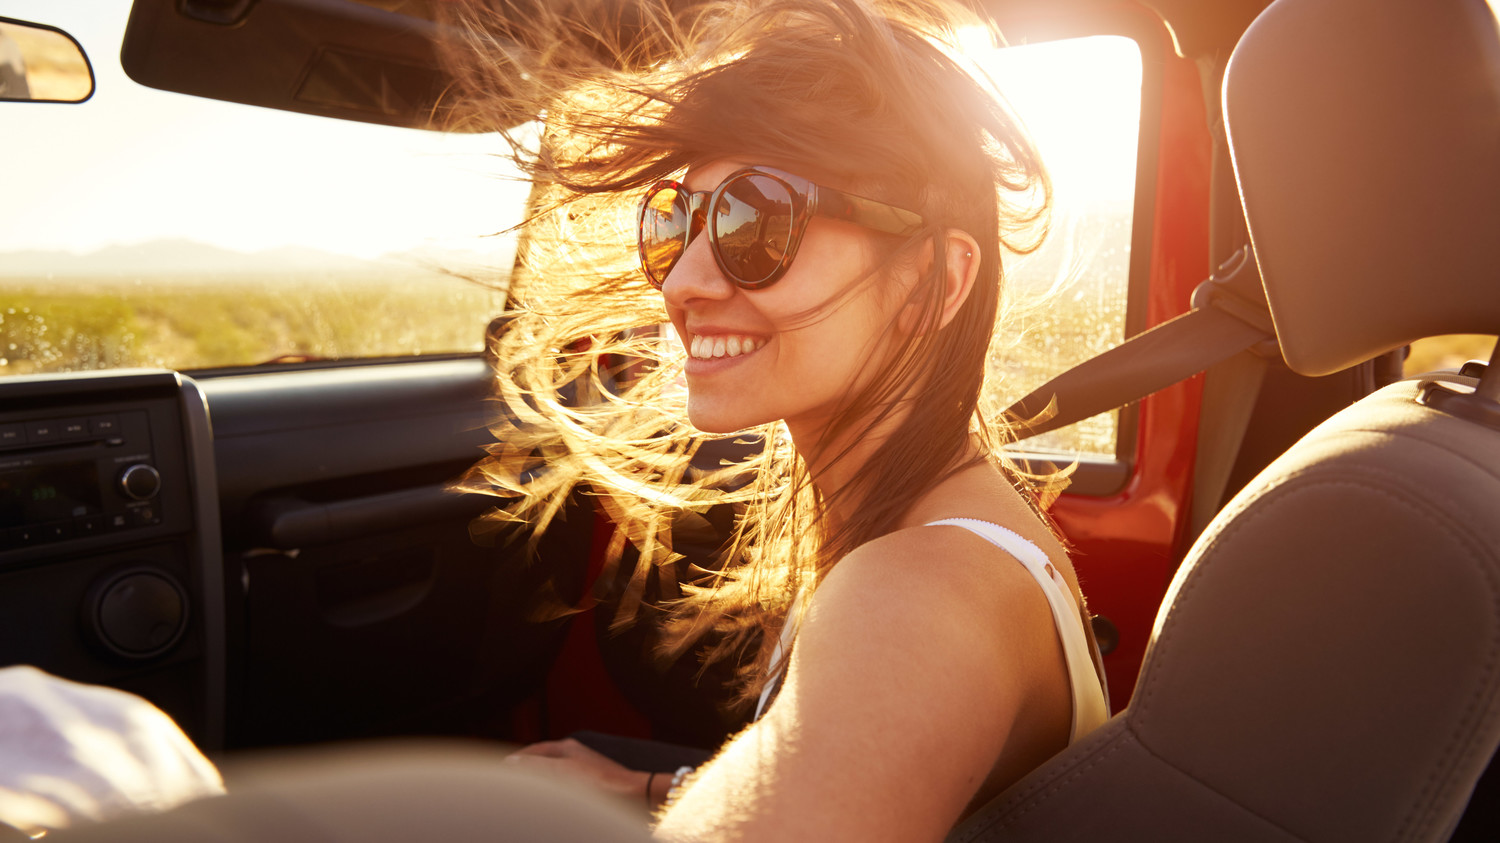 woman in car hair blowing in wind